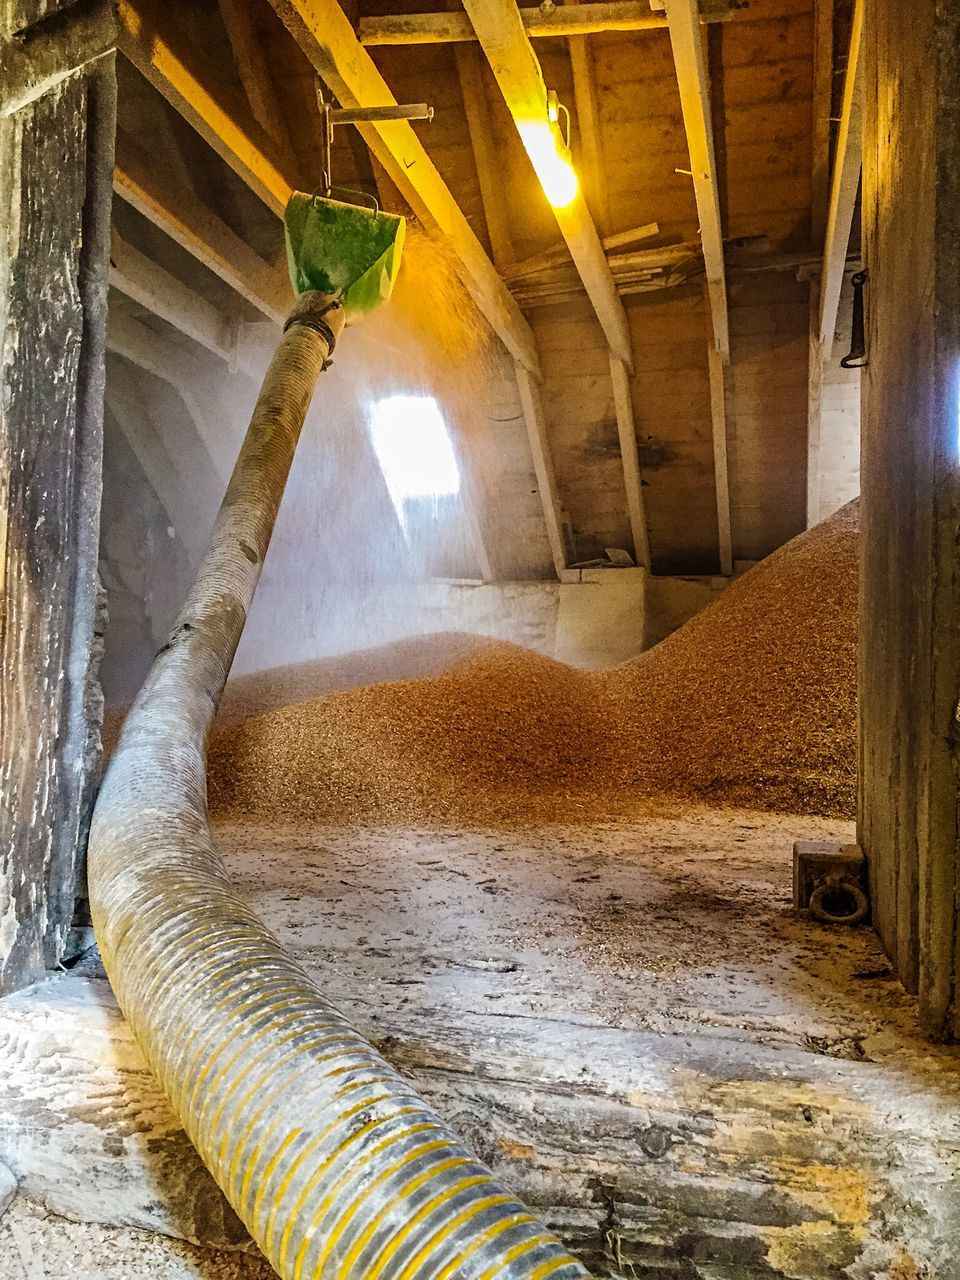 Sand Against The Wall With Large Pipe Indoors